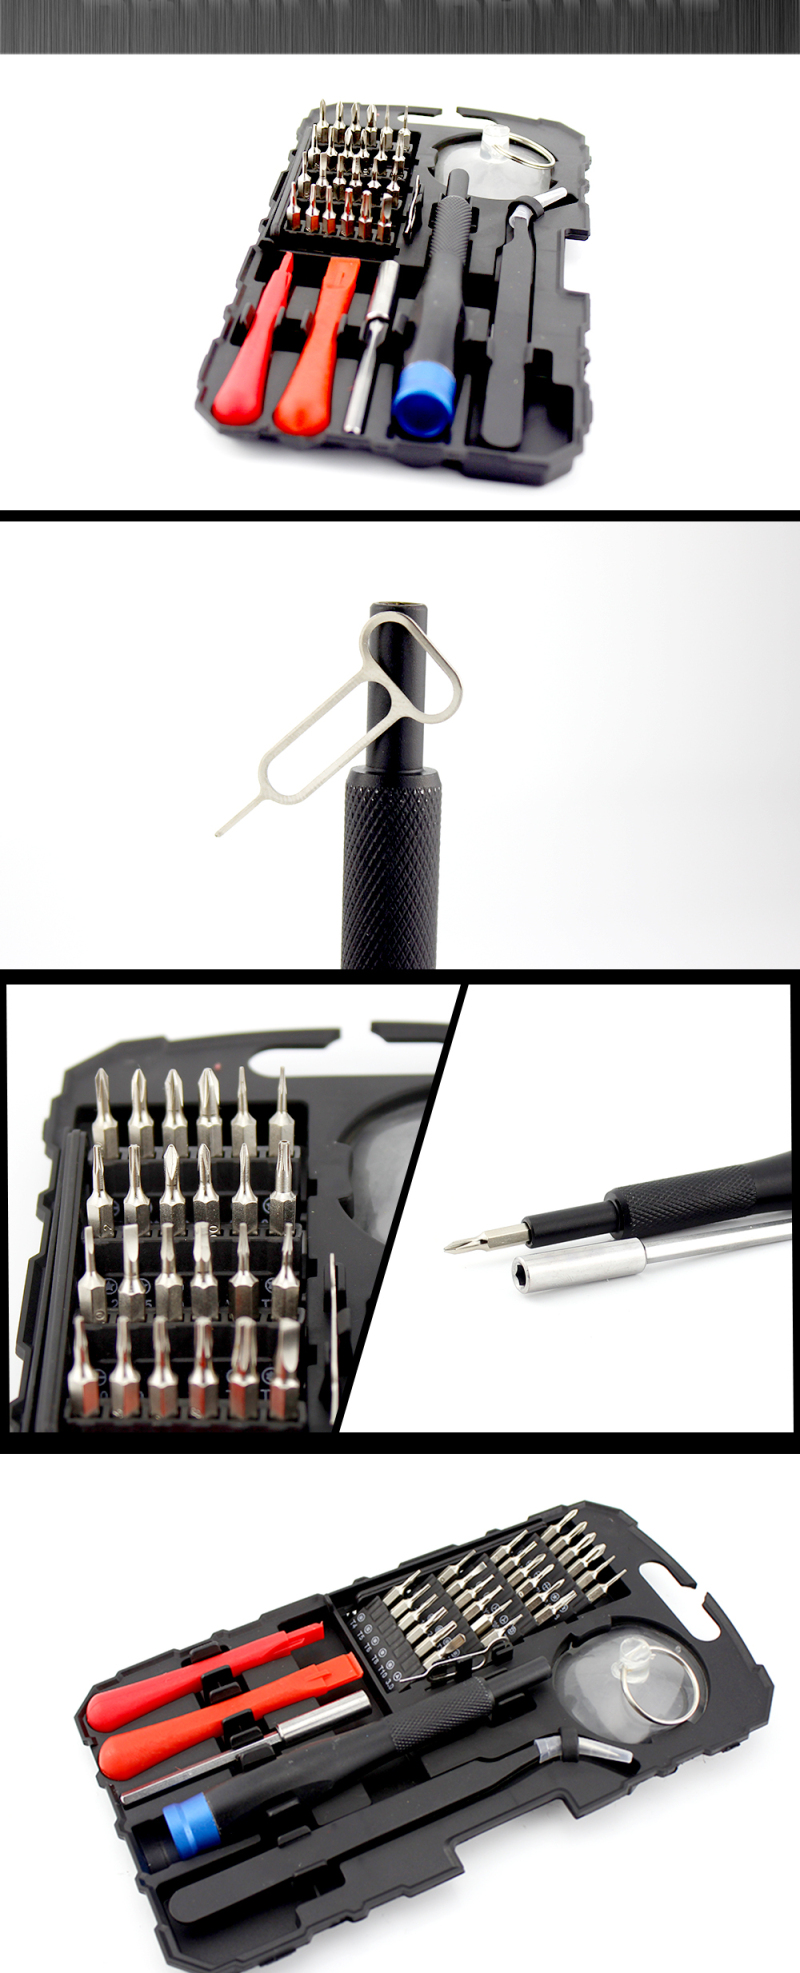 MPT® 32 in 1 Precision Screwdriver Set Disassemble For Tablets Phone Computer Laptop PC Watch